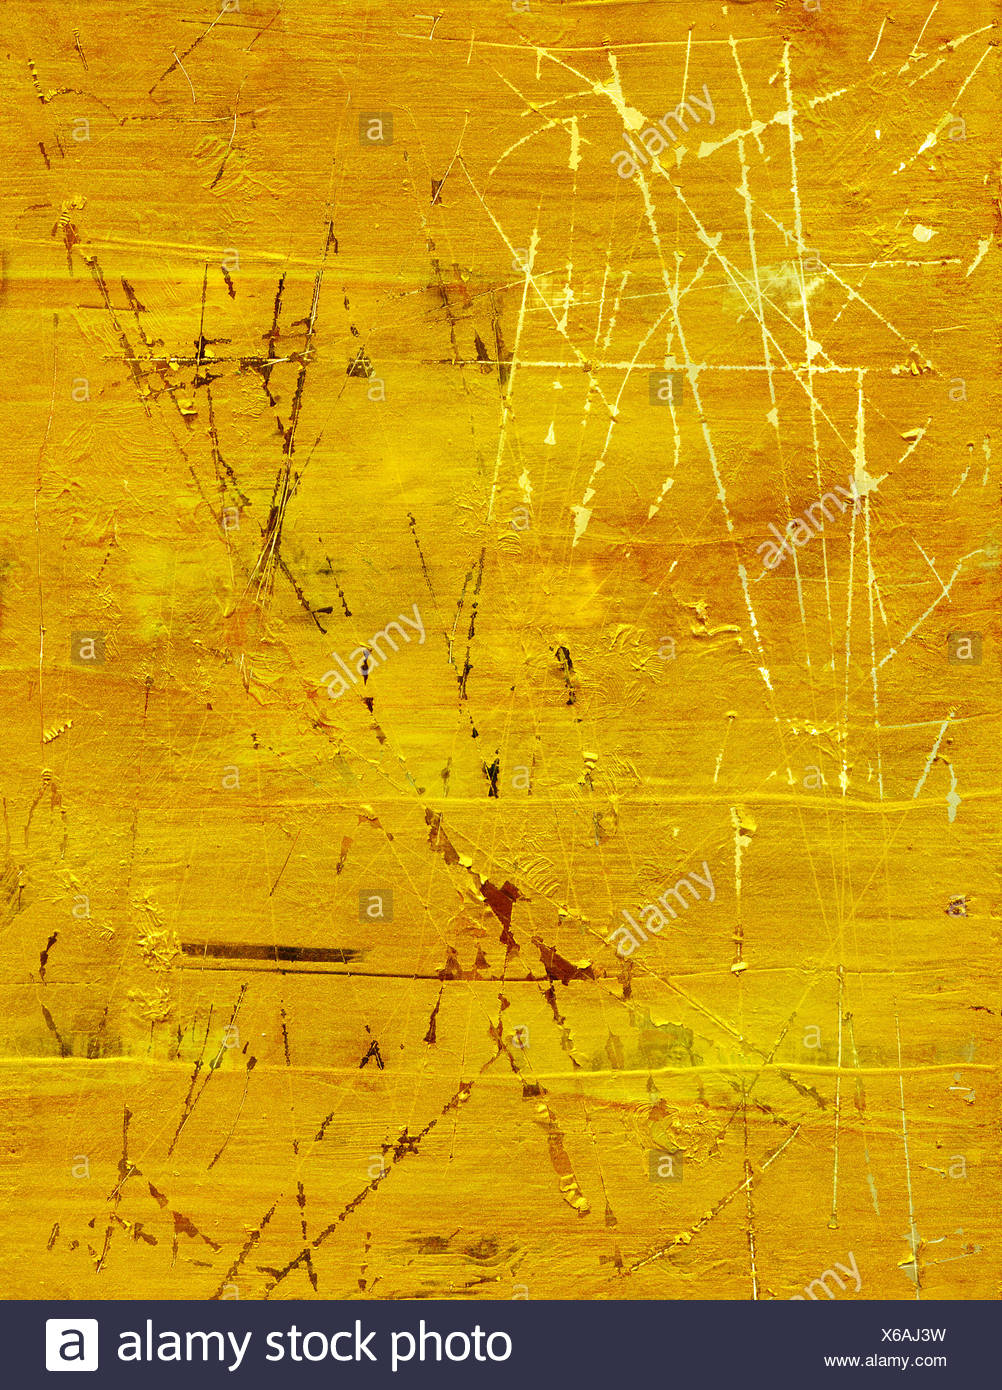 scratched gold texture - Stock Image